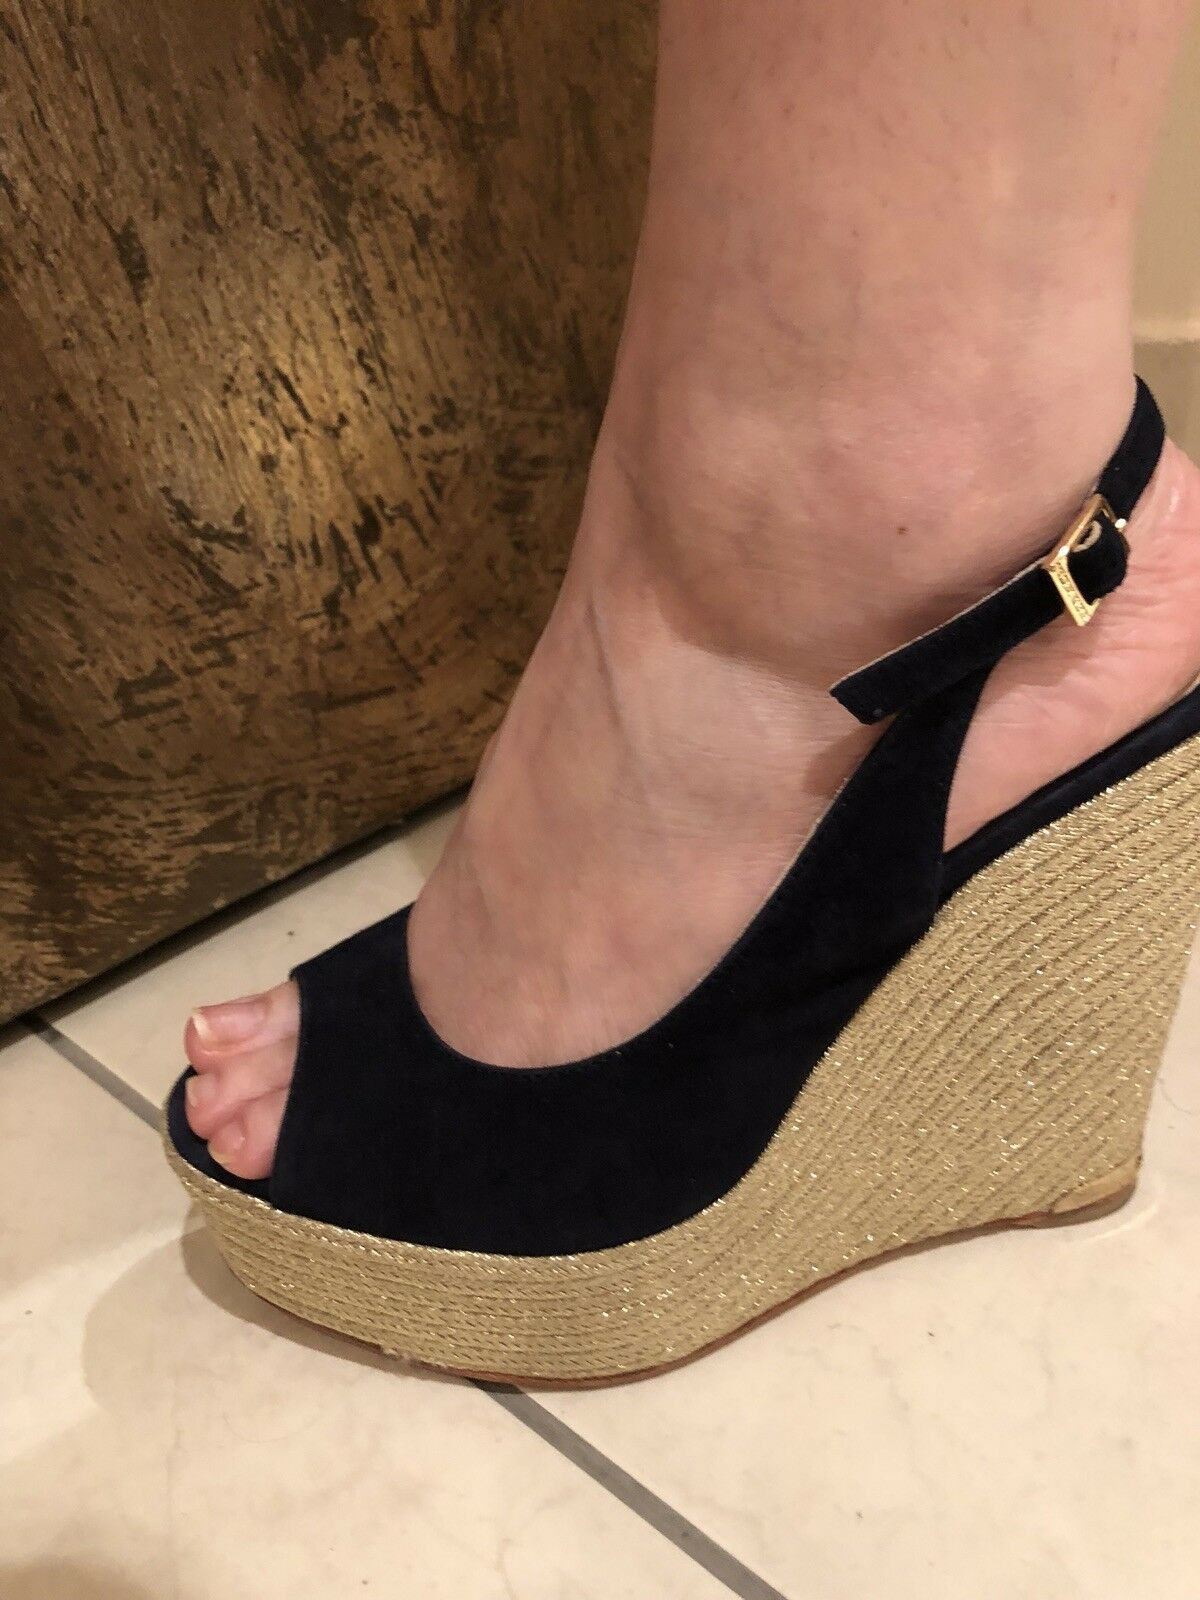 Paloma Barcelo Designer Navy Navy Navy bluee Suede Slingback With gold Metallic Wedges 8.5 770dea